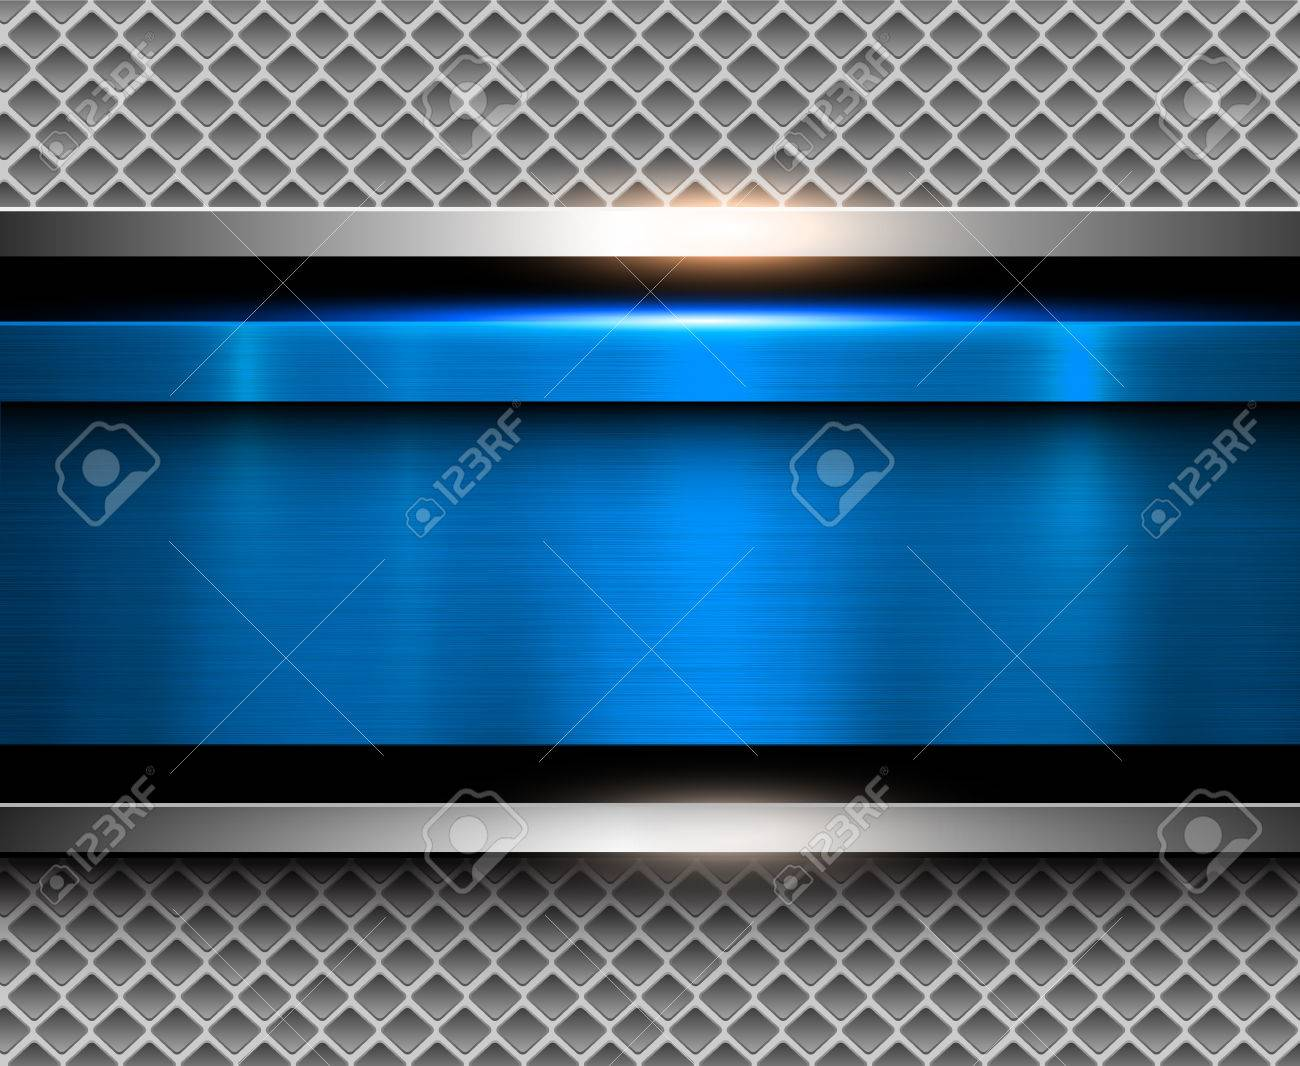 Background metallic blue with brushed metal texture, vector illustration. - 70320626